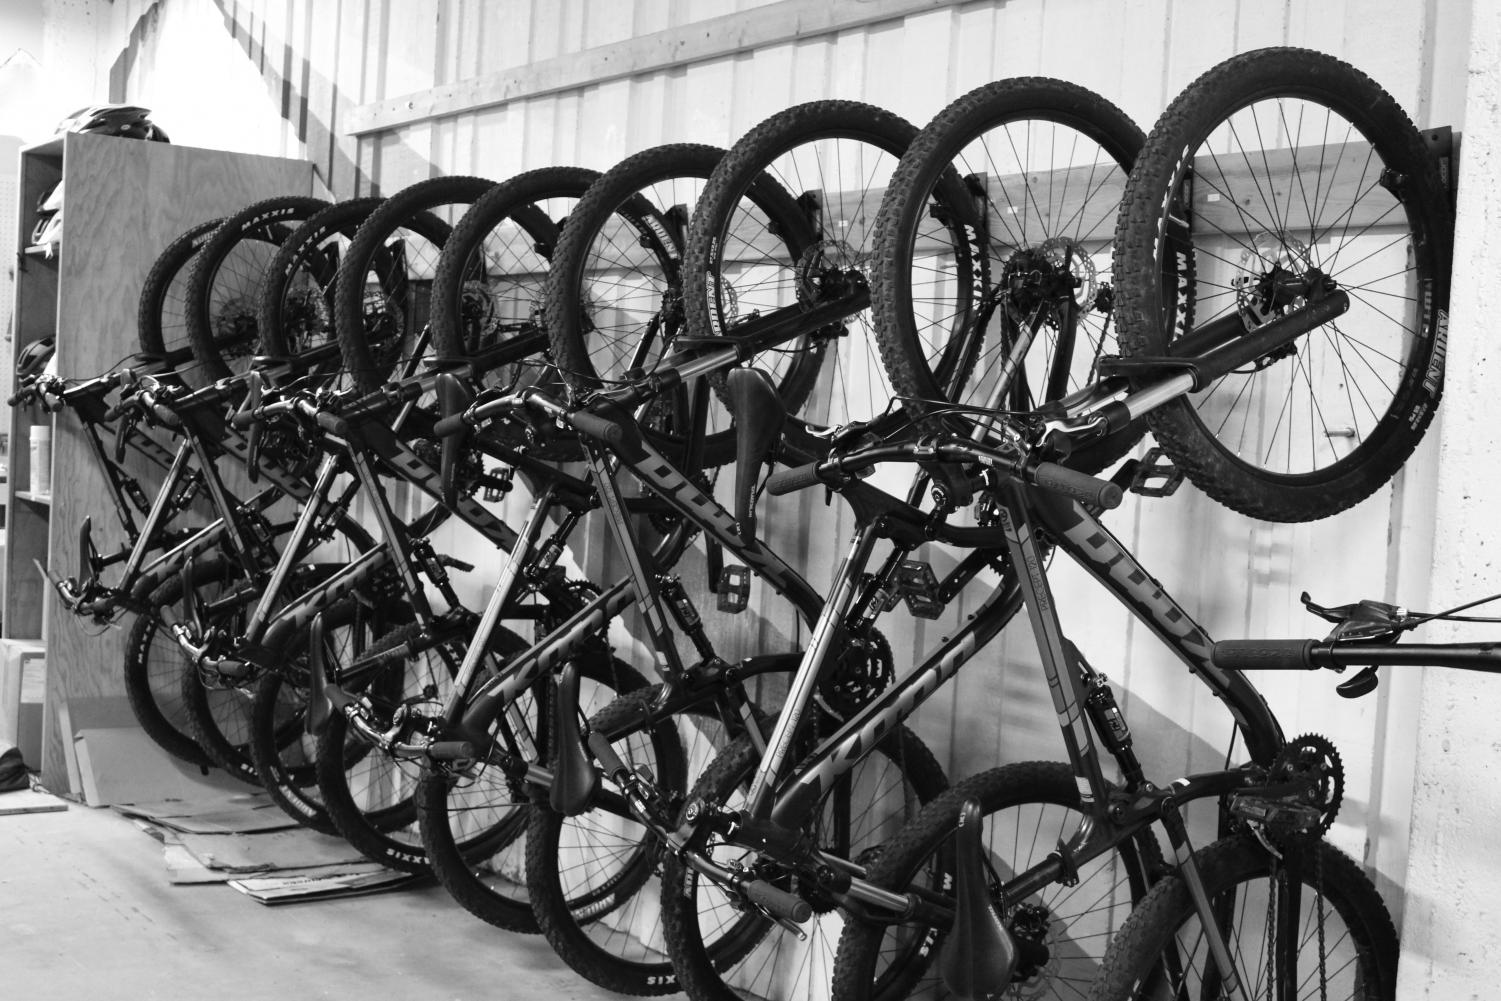 EPIC is offering bike rentals to EWU Students. The bike shop is opened a few weeks ago, but the cold weather has slowed business | Mckenzie Ford for The Easterner